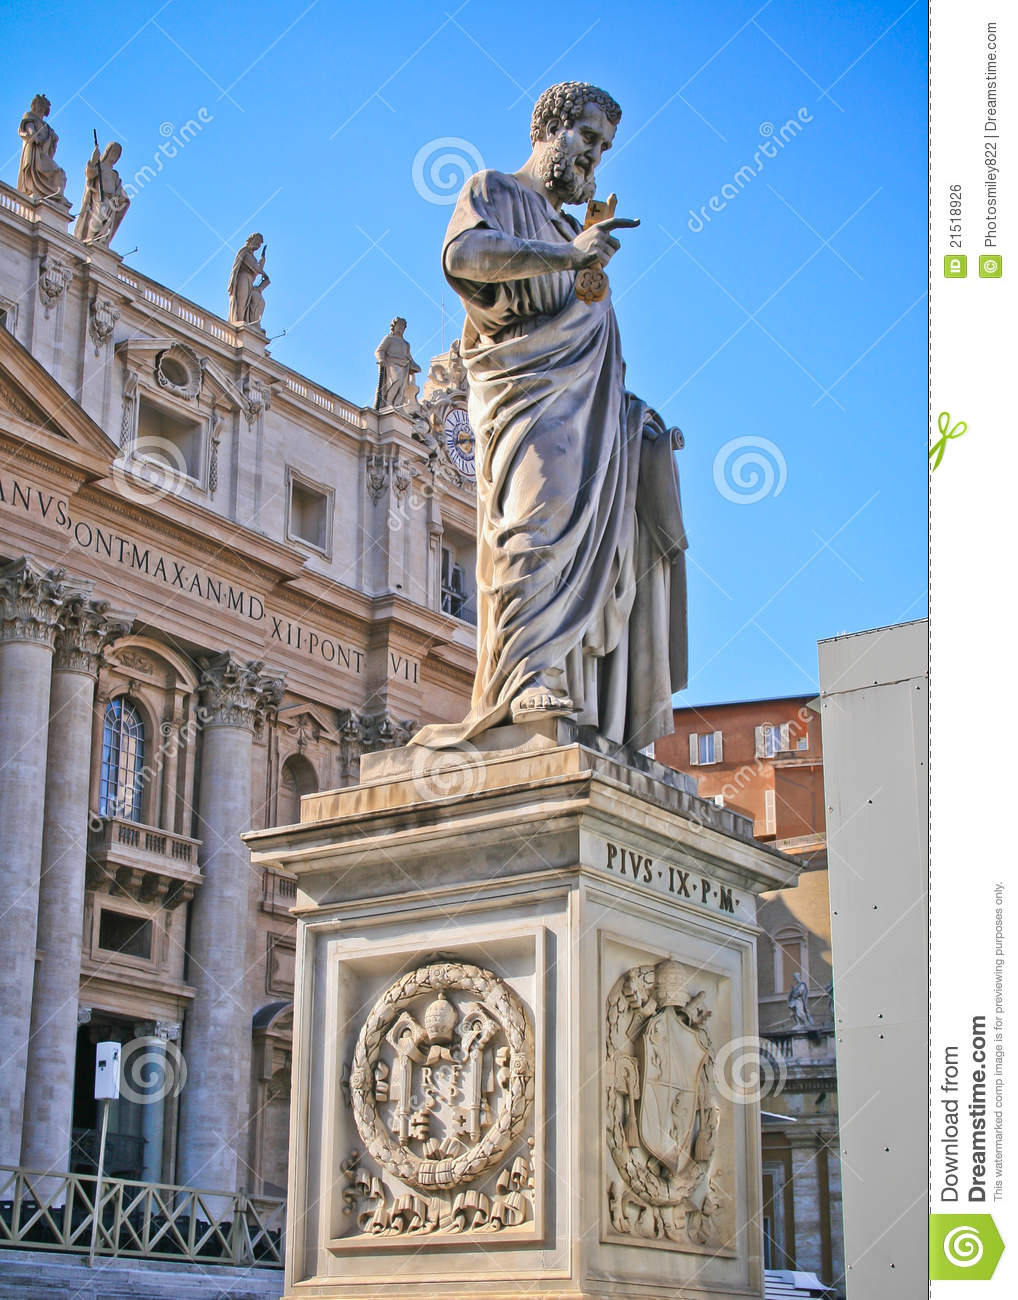 State Of The Vatican City Stock Photo. Image Of Beautiful